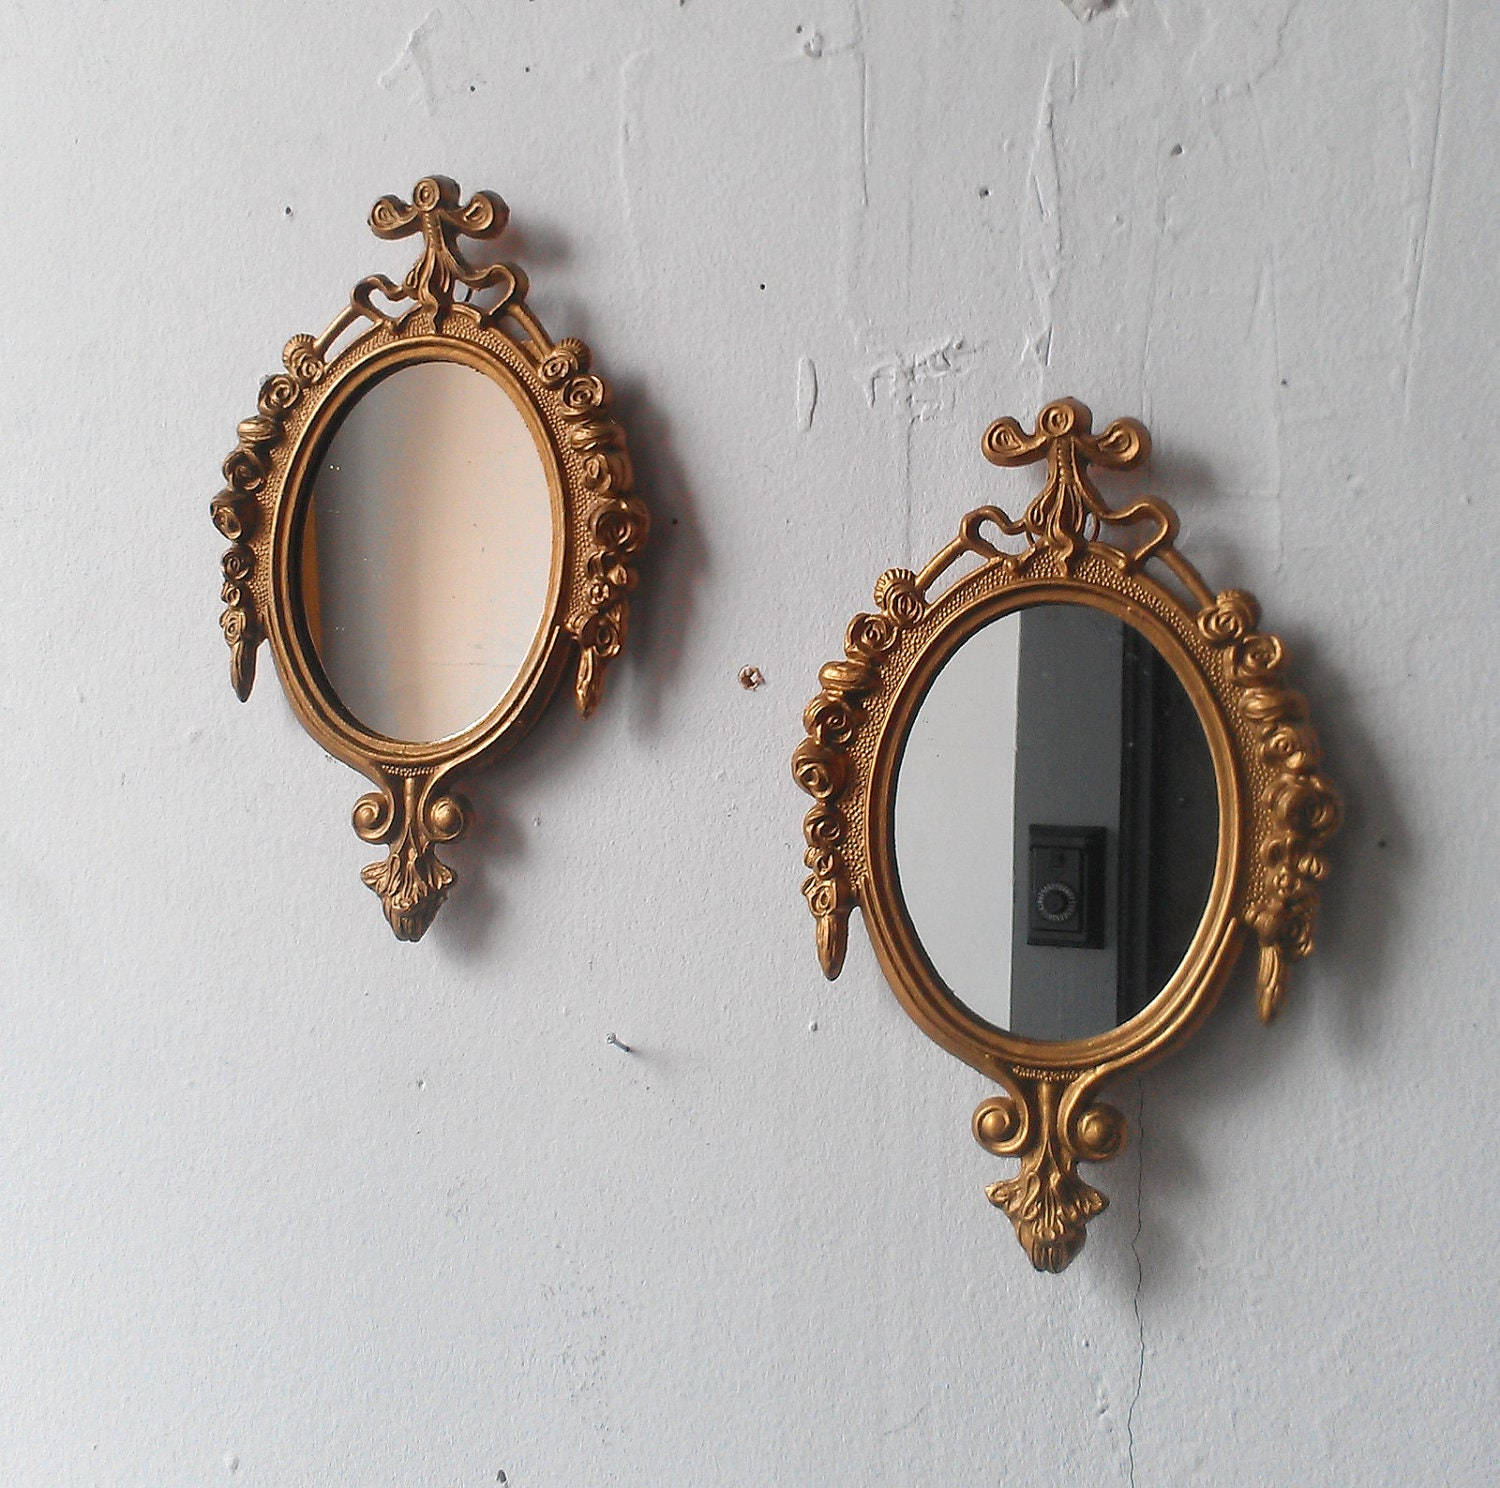 Mirror Set of Two in Matching Vintage Frames - Dark Gold - SecretWindowMirrors